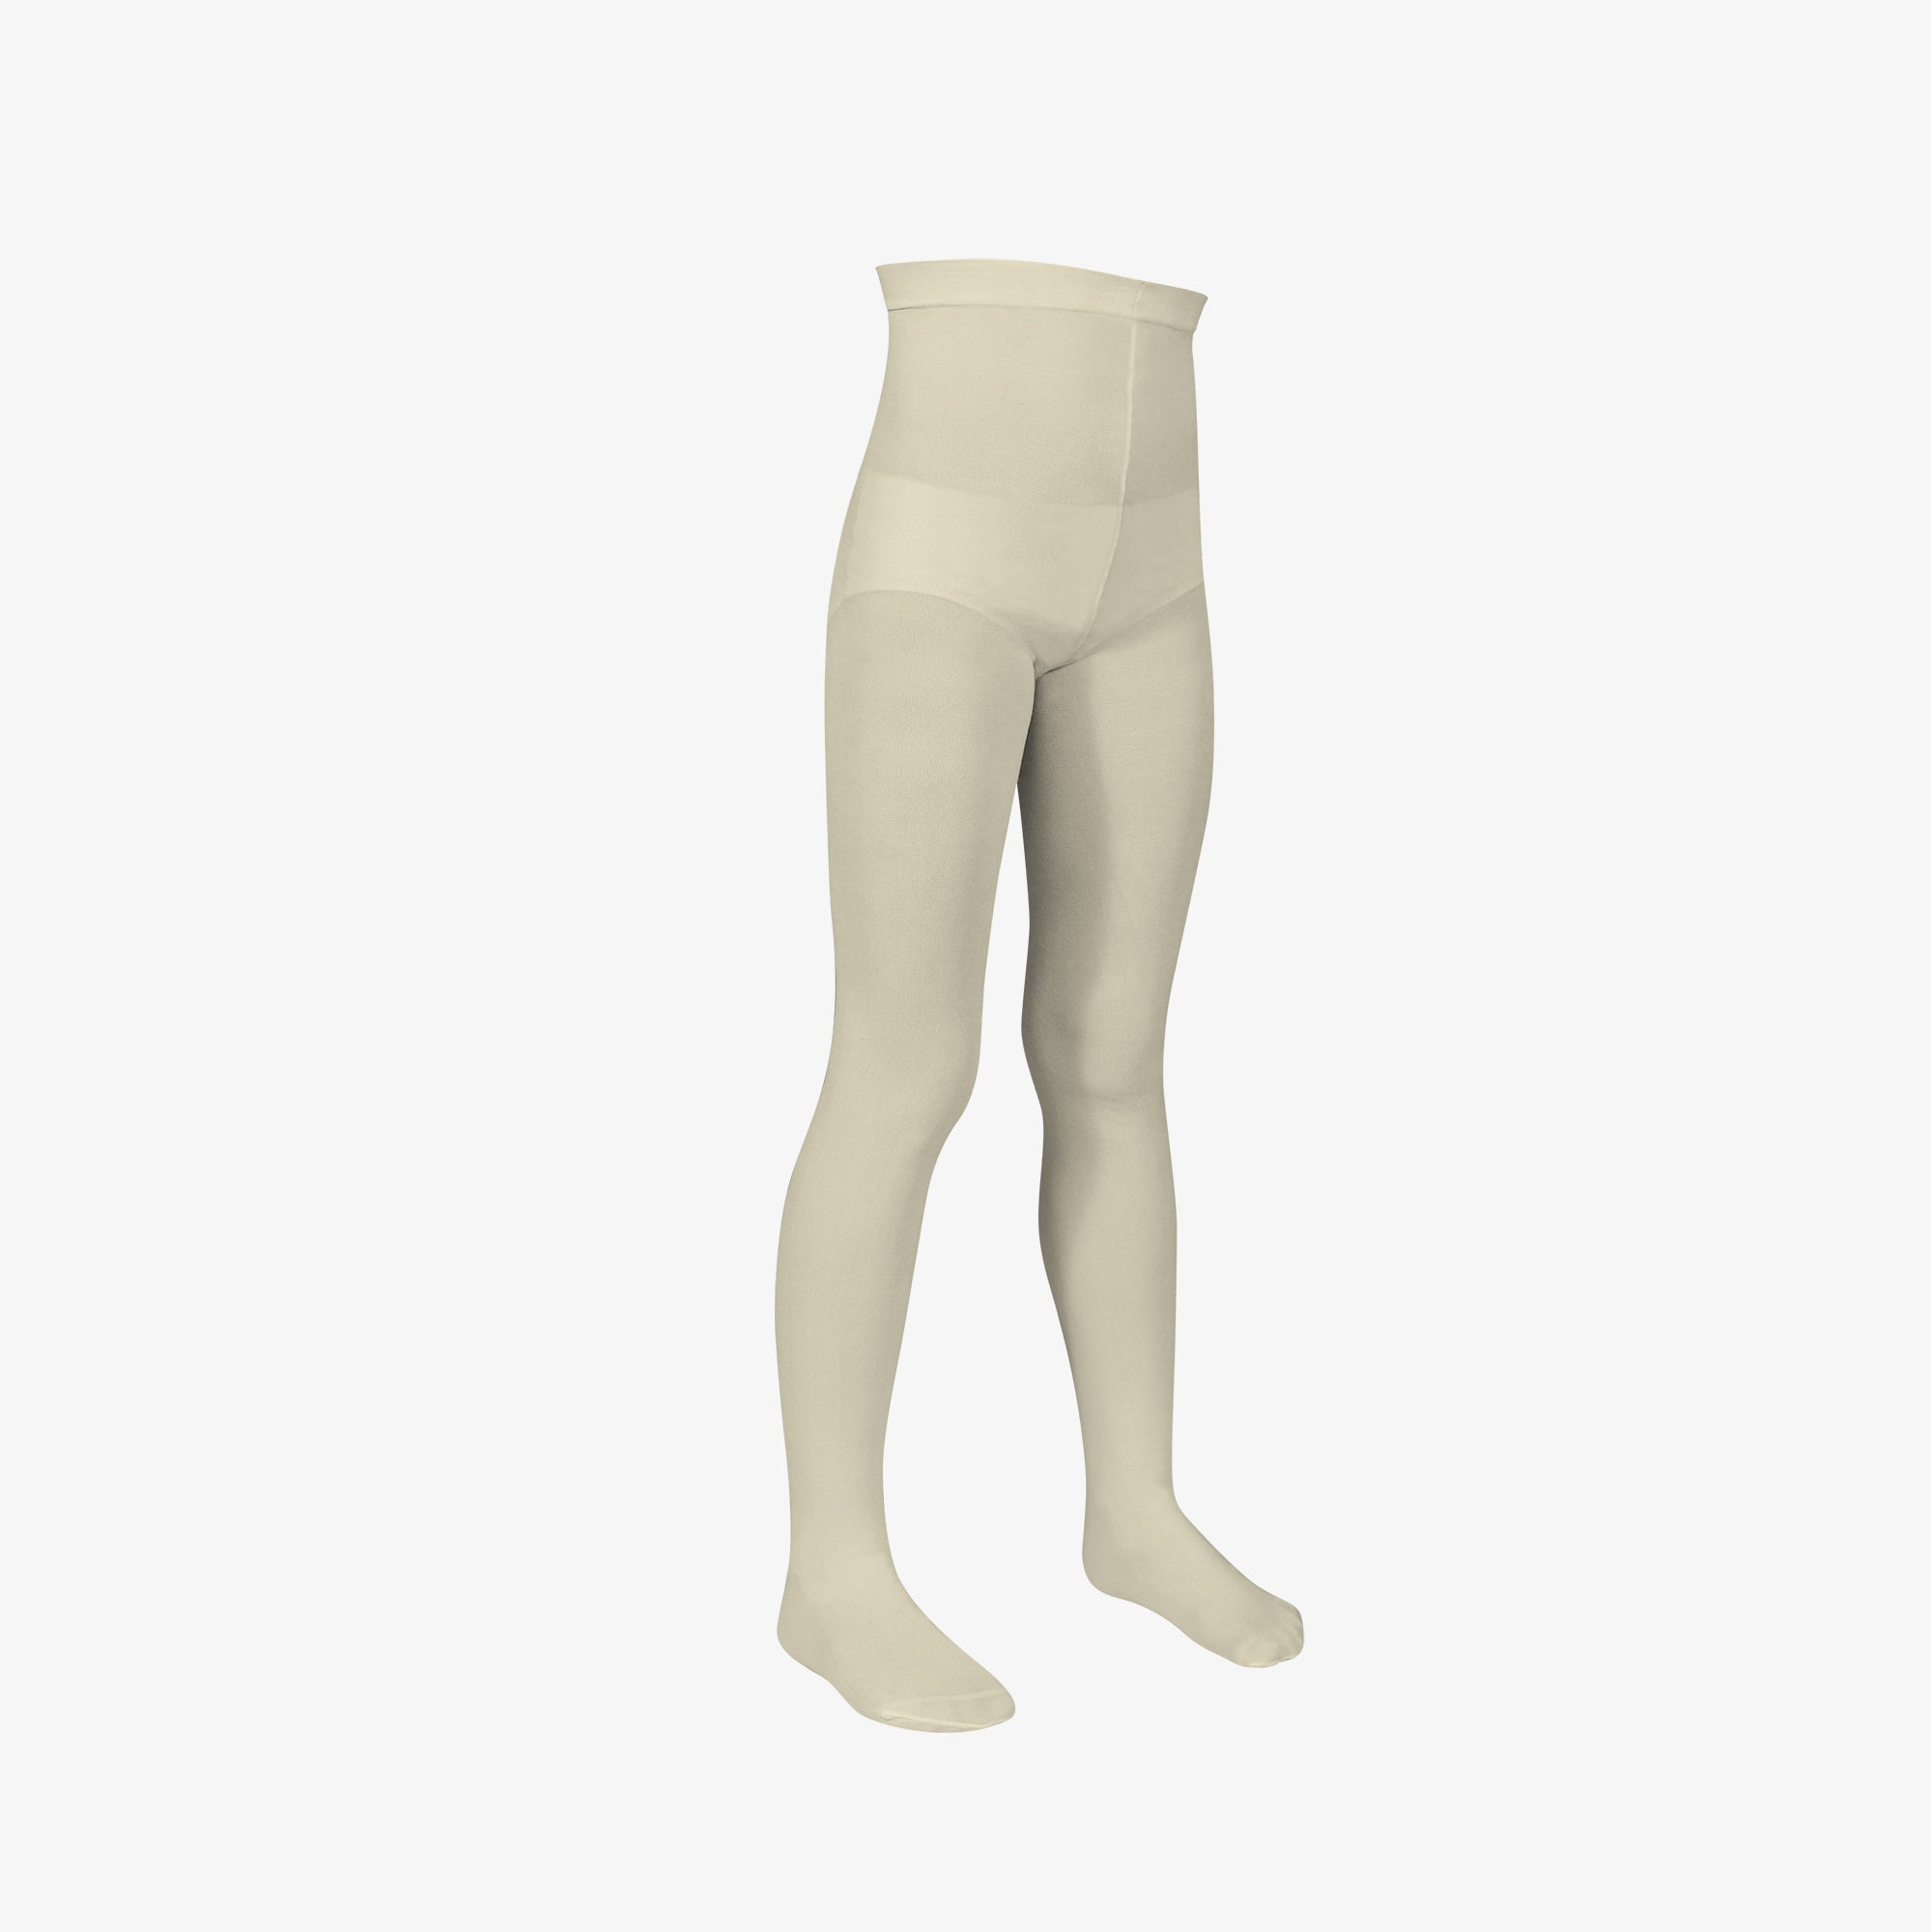 Tights- Style: 310 - Ivory